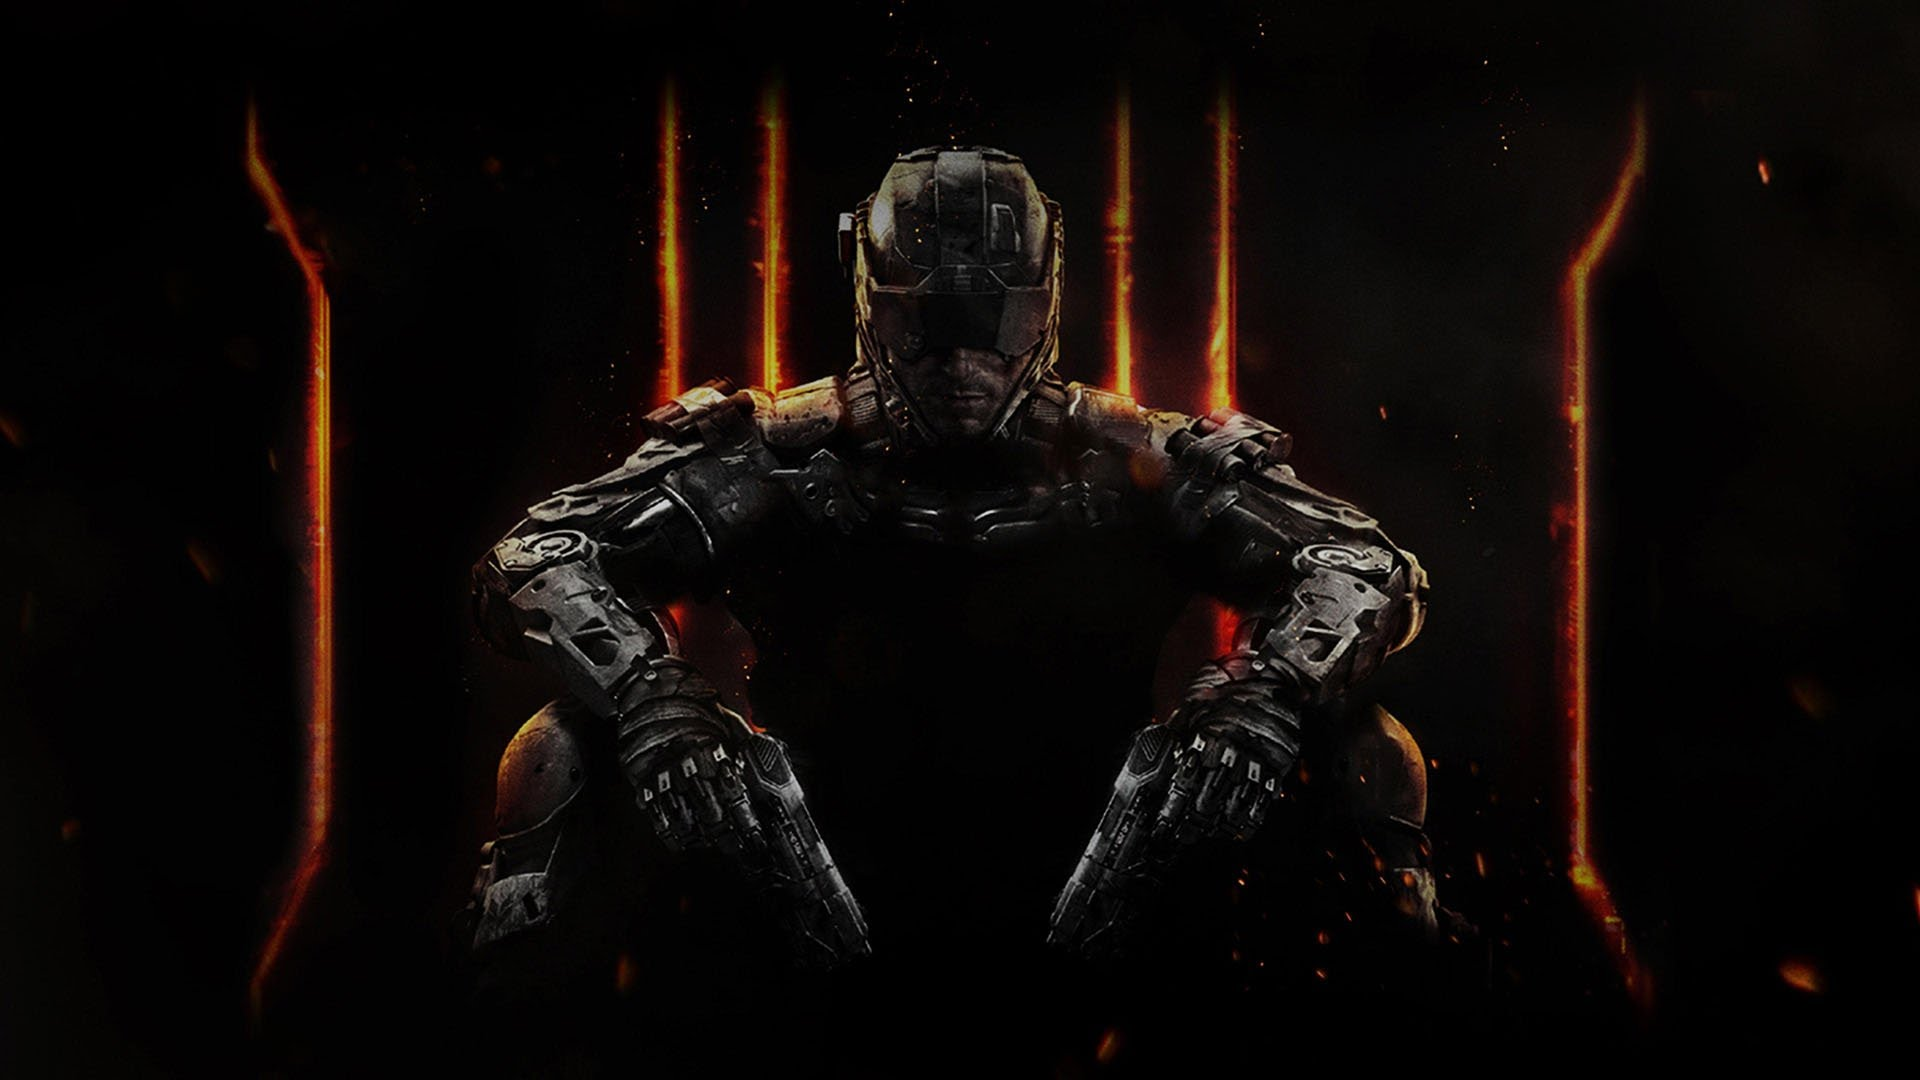 Report Call of Duty Black Ops 4 ing this year update Polygon